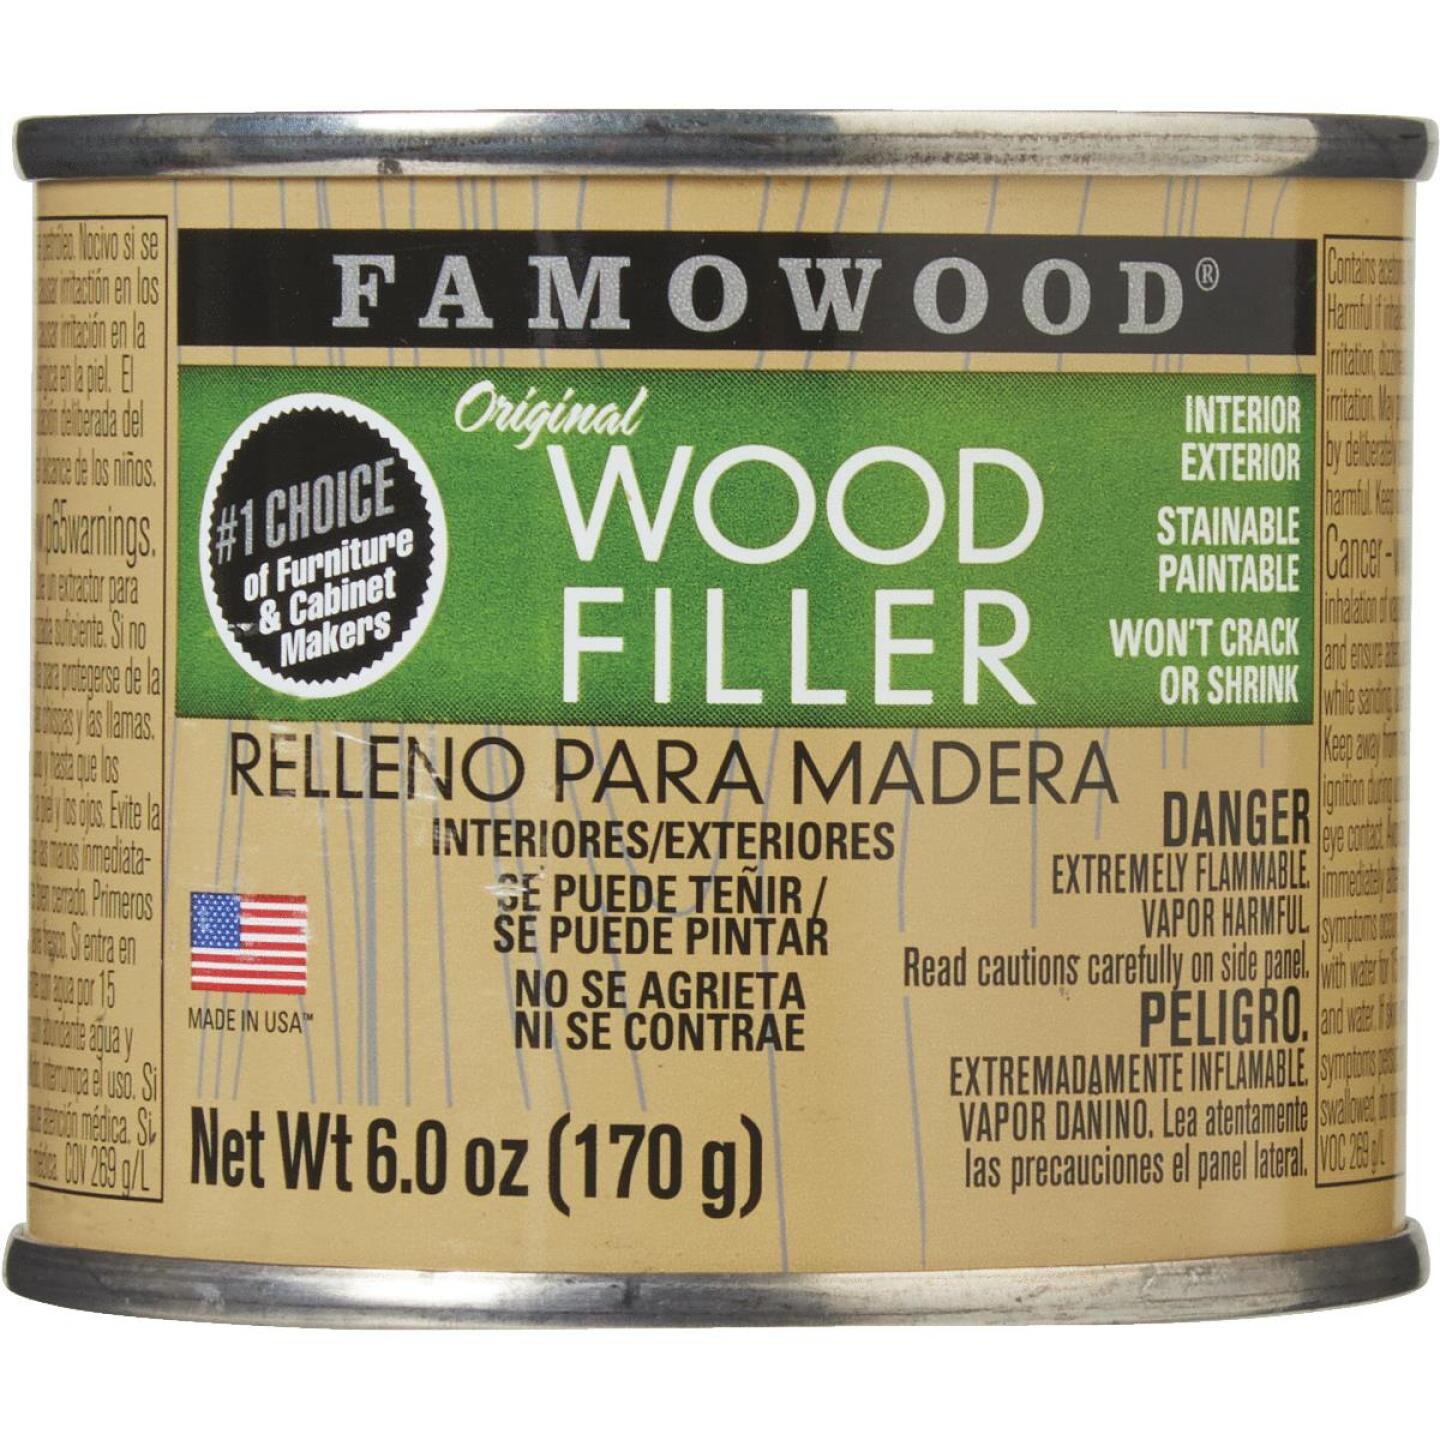 FAMOWOOD Red oak  6 Oz. Wood Filler Image 2